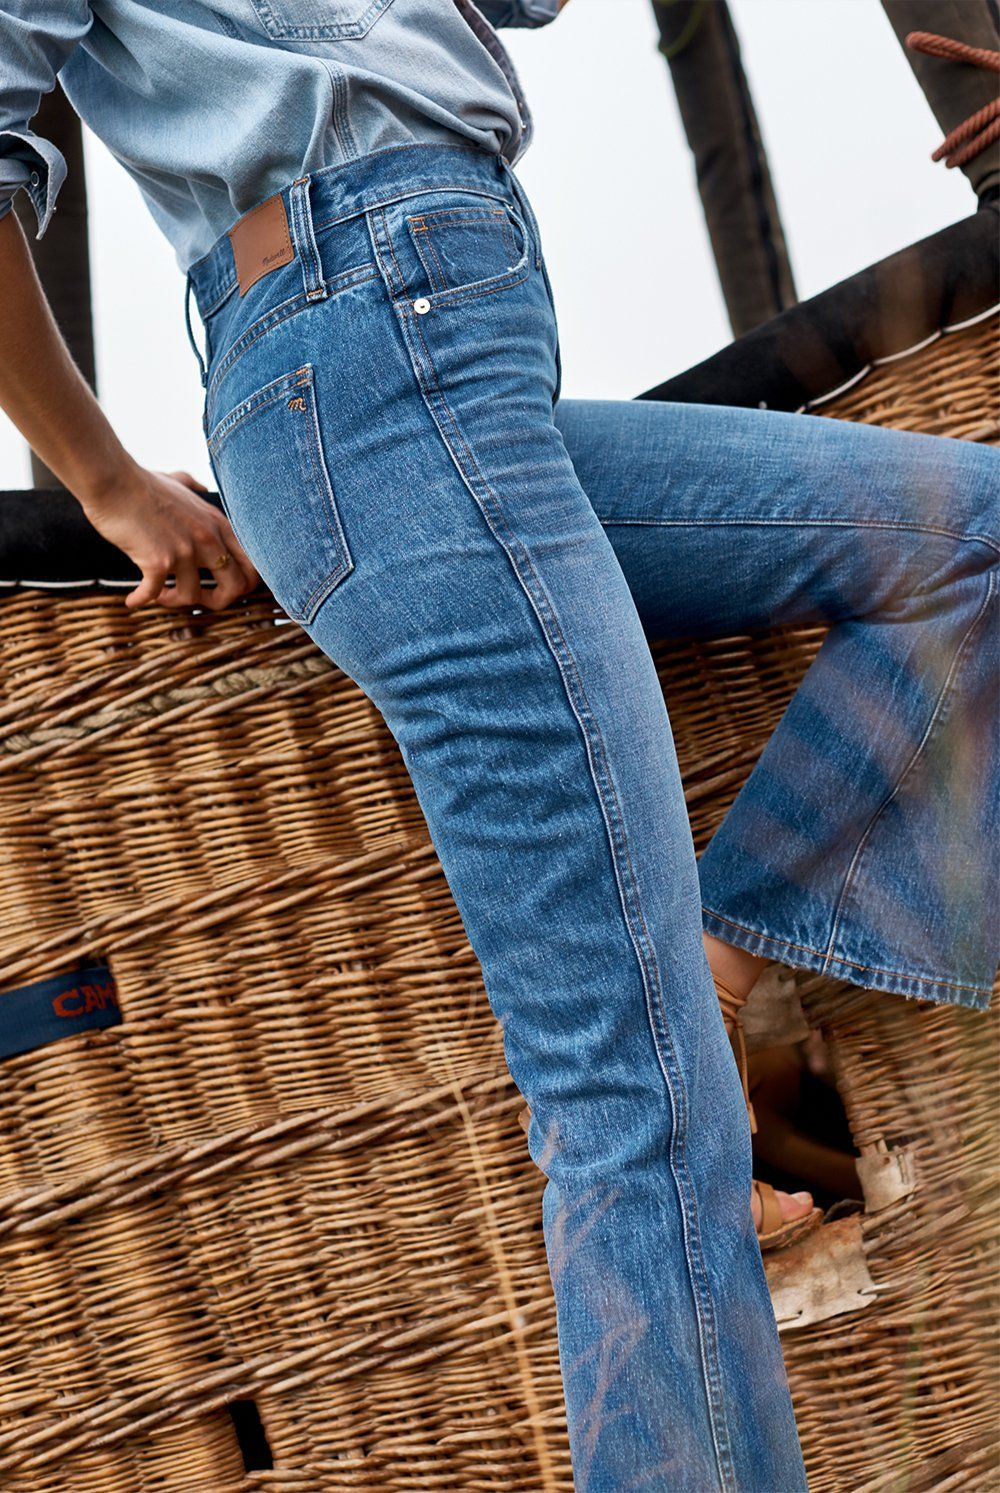 9c6ddb963c7 madewell rigid flare jeans worn with denim western shirt.